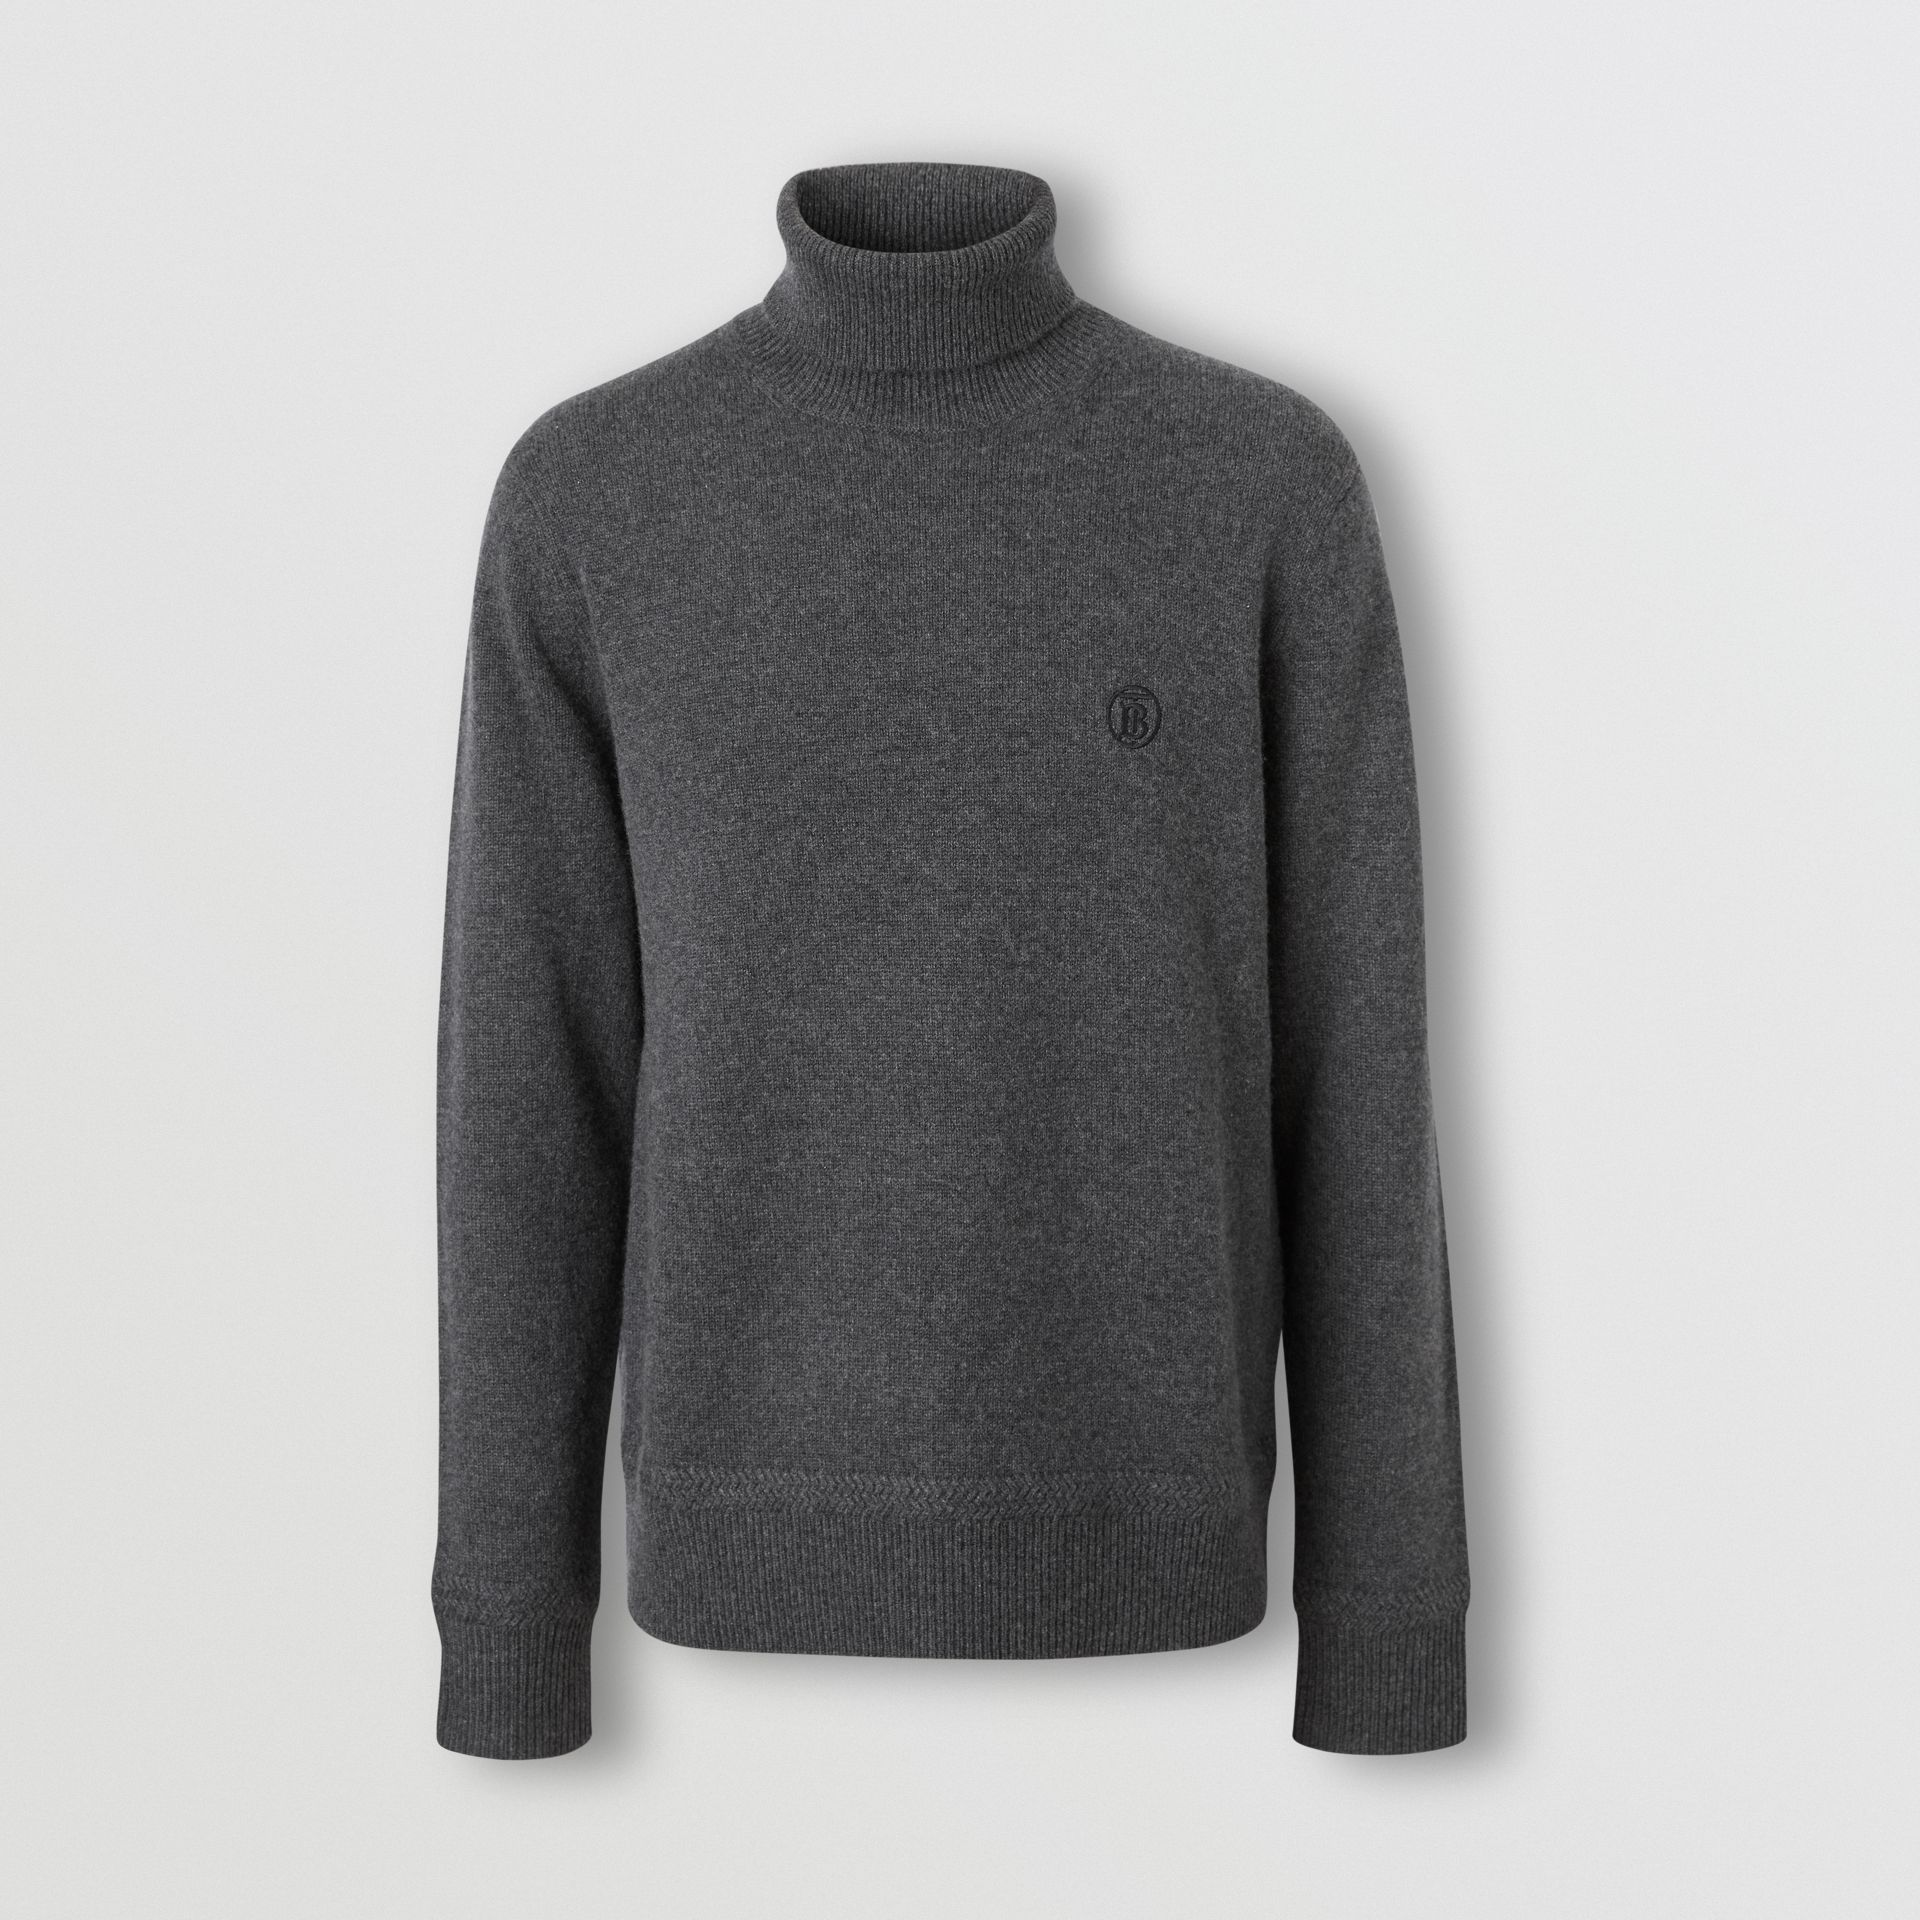 Monogram Motif Cashmere Roll-neck Sweater in Charcoal - Men | Burberry - gallery image 3